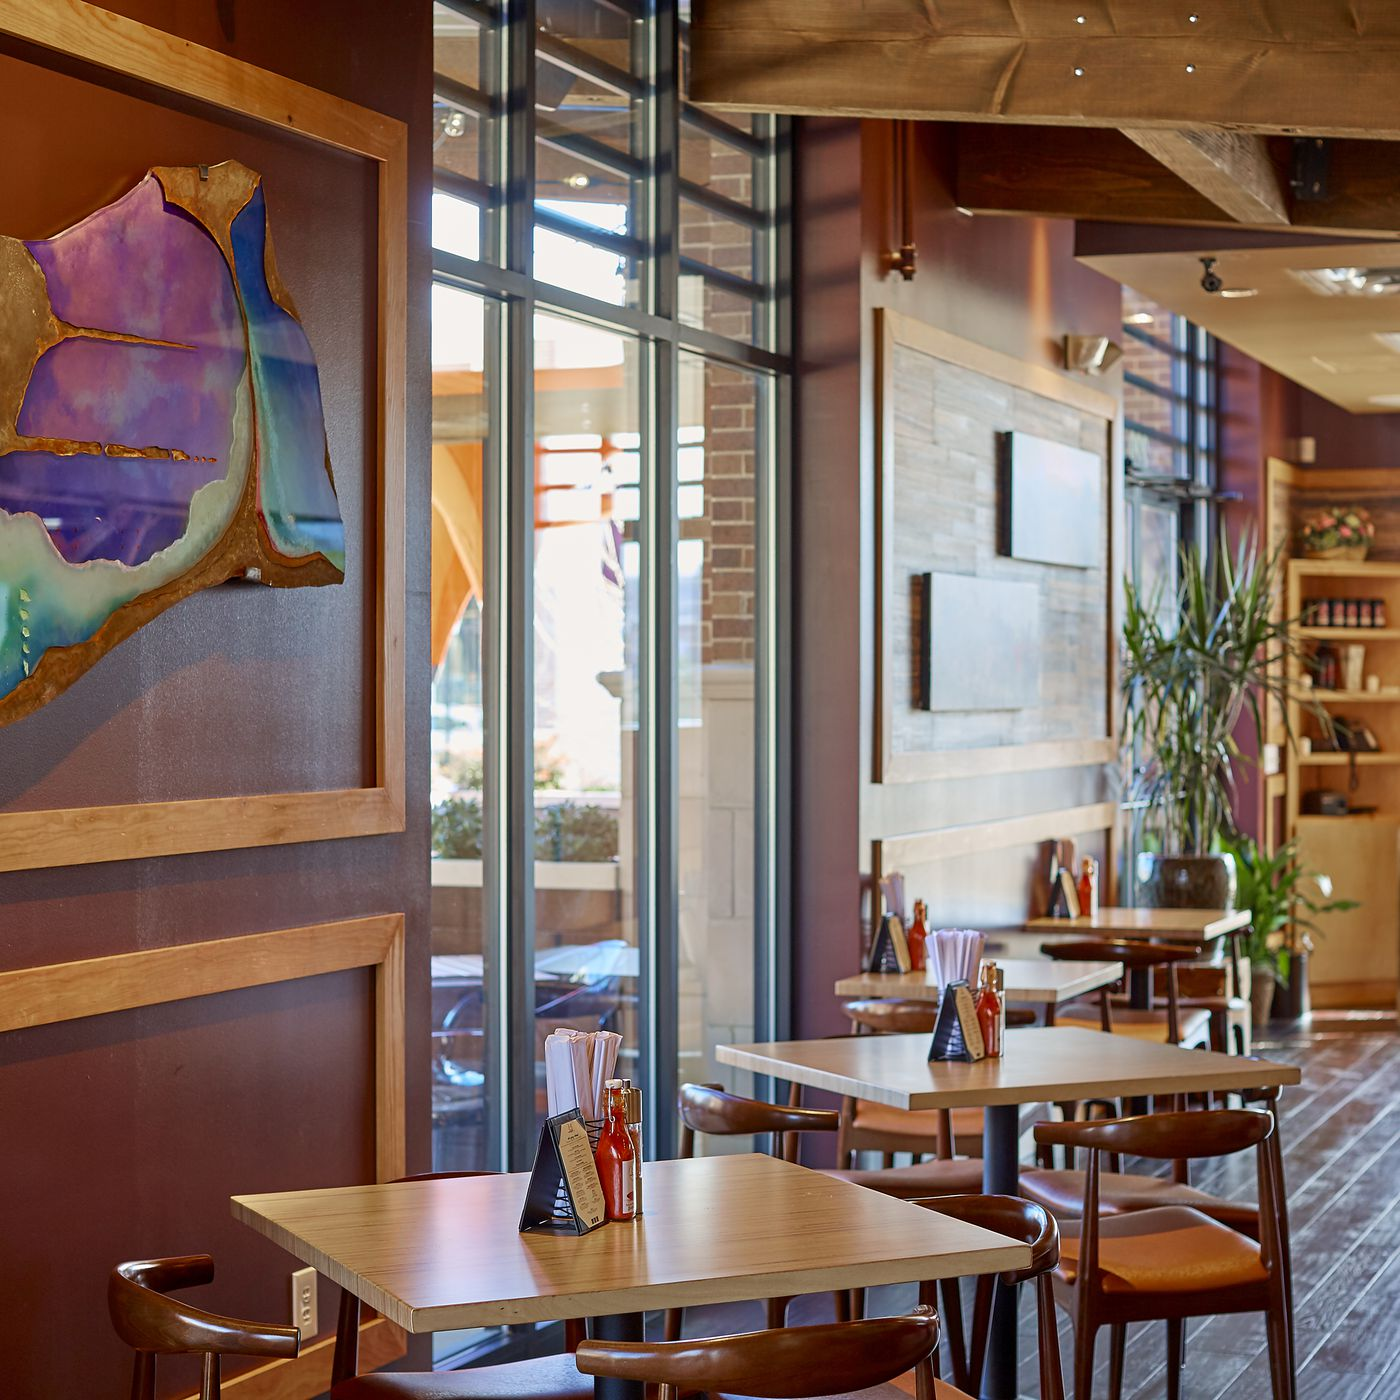 A Look At Malai Kitchen S Swanky New Southlake Outpost